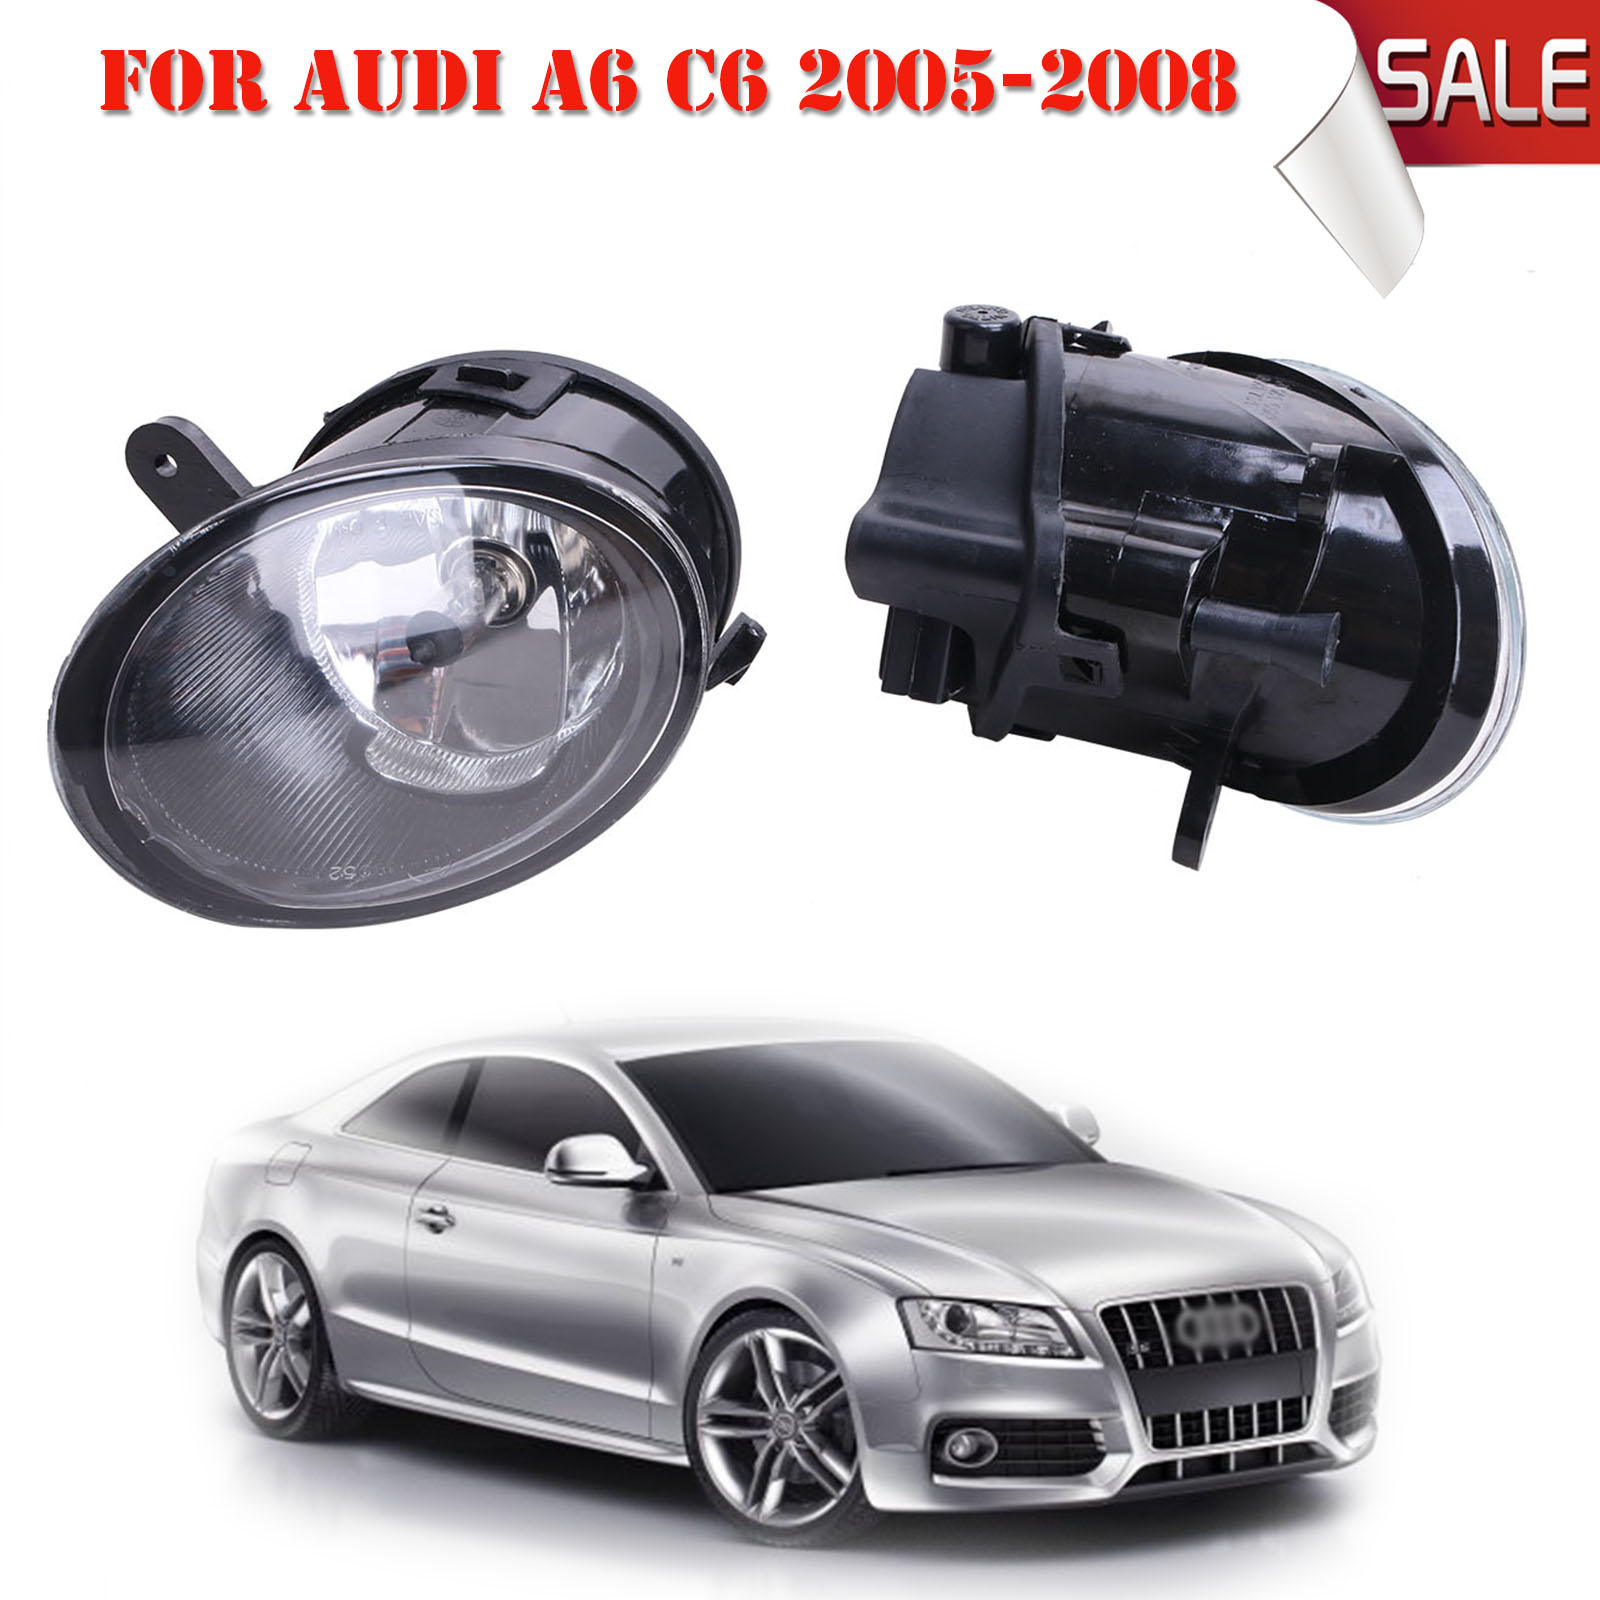 2x Side Front Fog Driving Light Fog Lamps with H7 Bulbs For AUDI A6 C6 2005 2006 2007 2008 Car-Styling WISENGEAR #P312 free shipping for vw polo 2005 2006 2007 2008 new front left side halogen fog light fog light with bulb